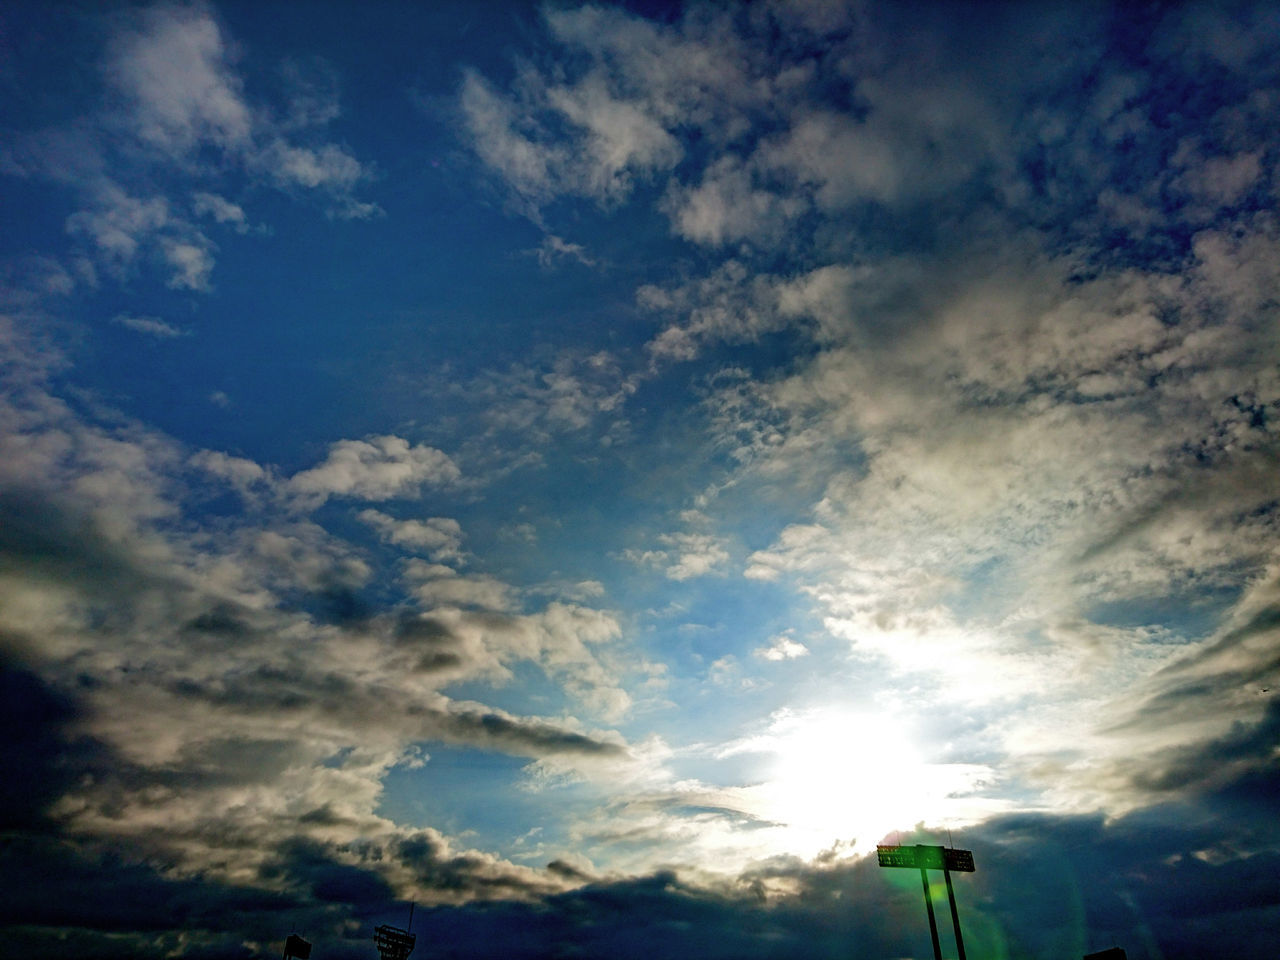 sky, cloud - sky, low angle view, beauty in nature, nature, scenics, no people, sun, outdoors, blue, sunset, day